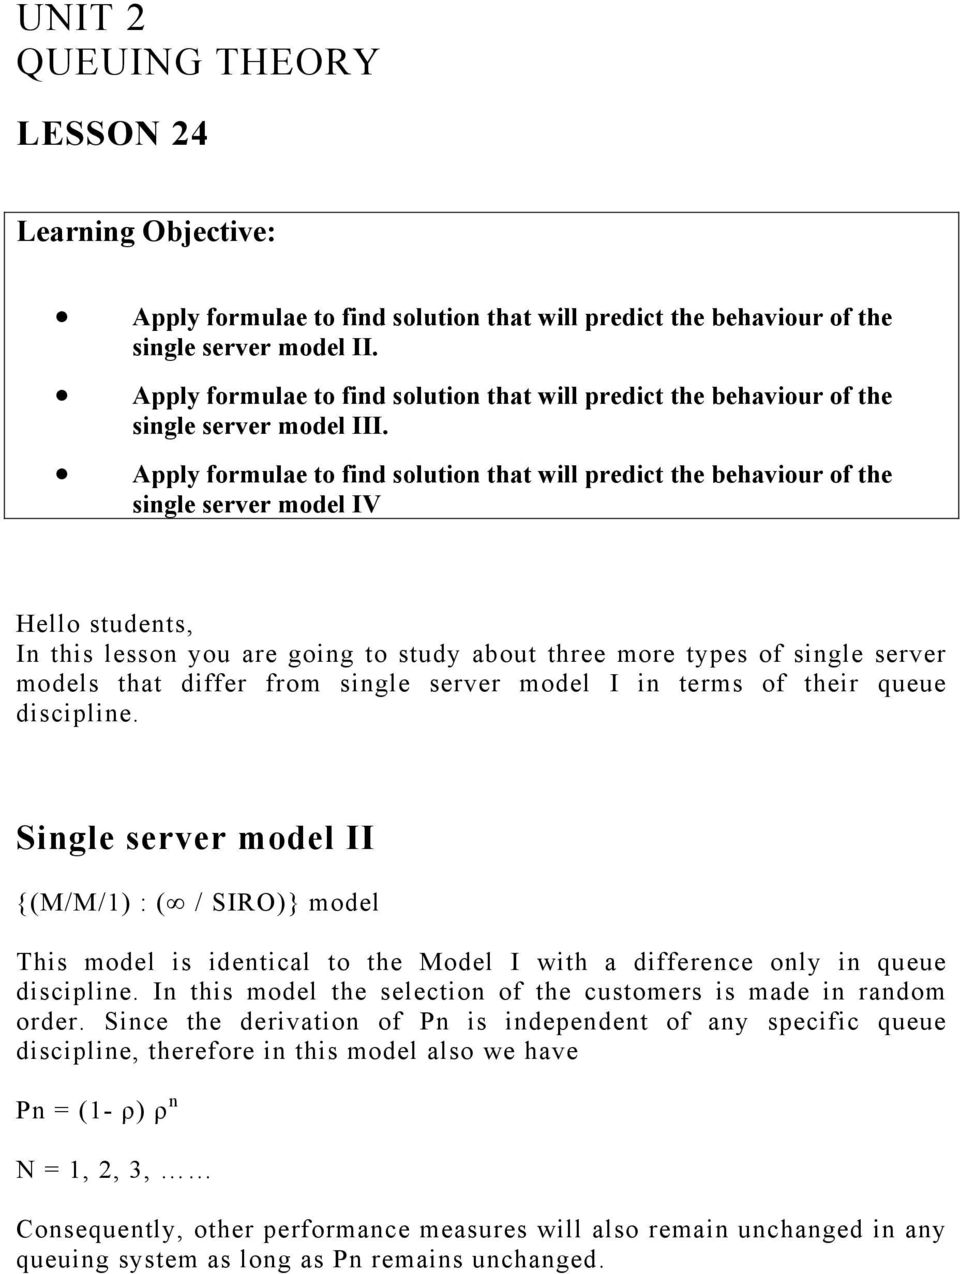 Apply formulae to find solution that will predict the behaviour of the single server model IV Hello students, In this lesson you are going to study about three more types of single server models that